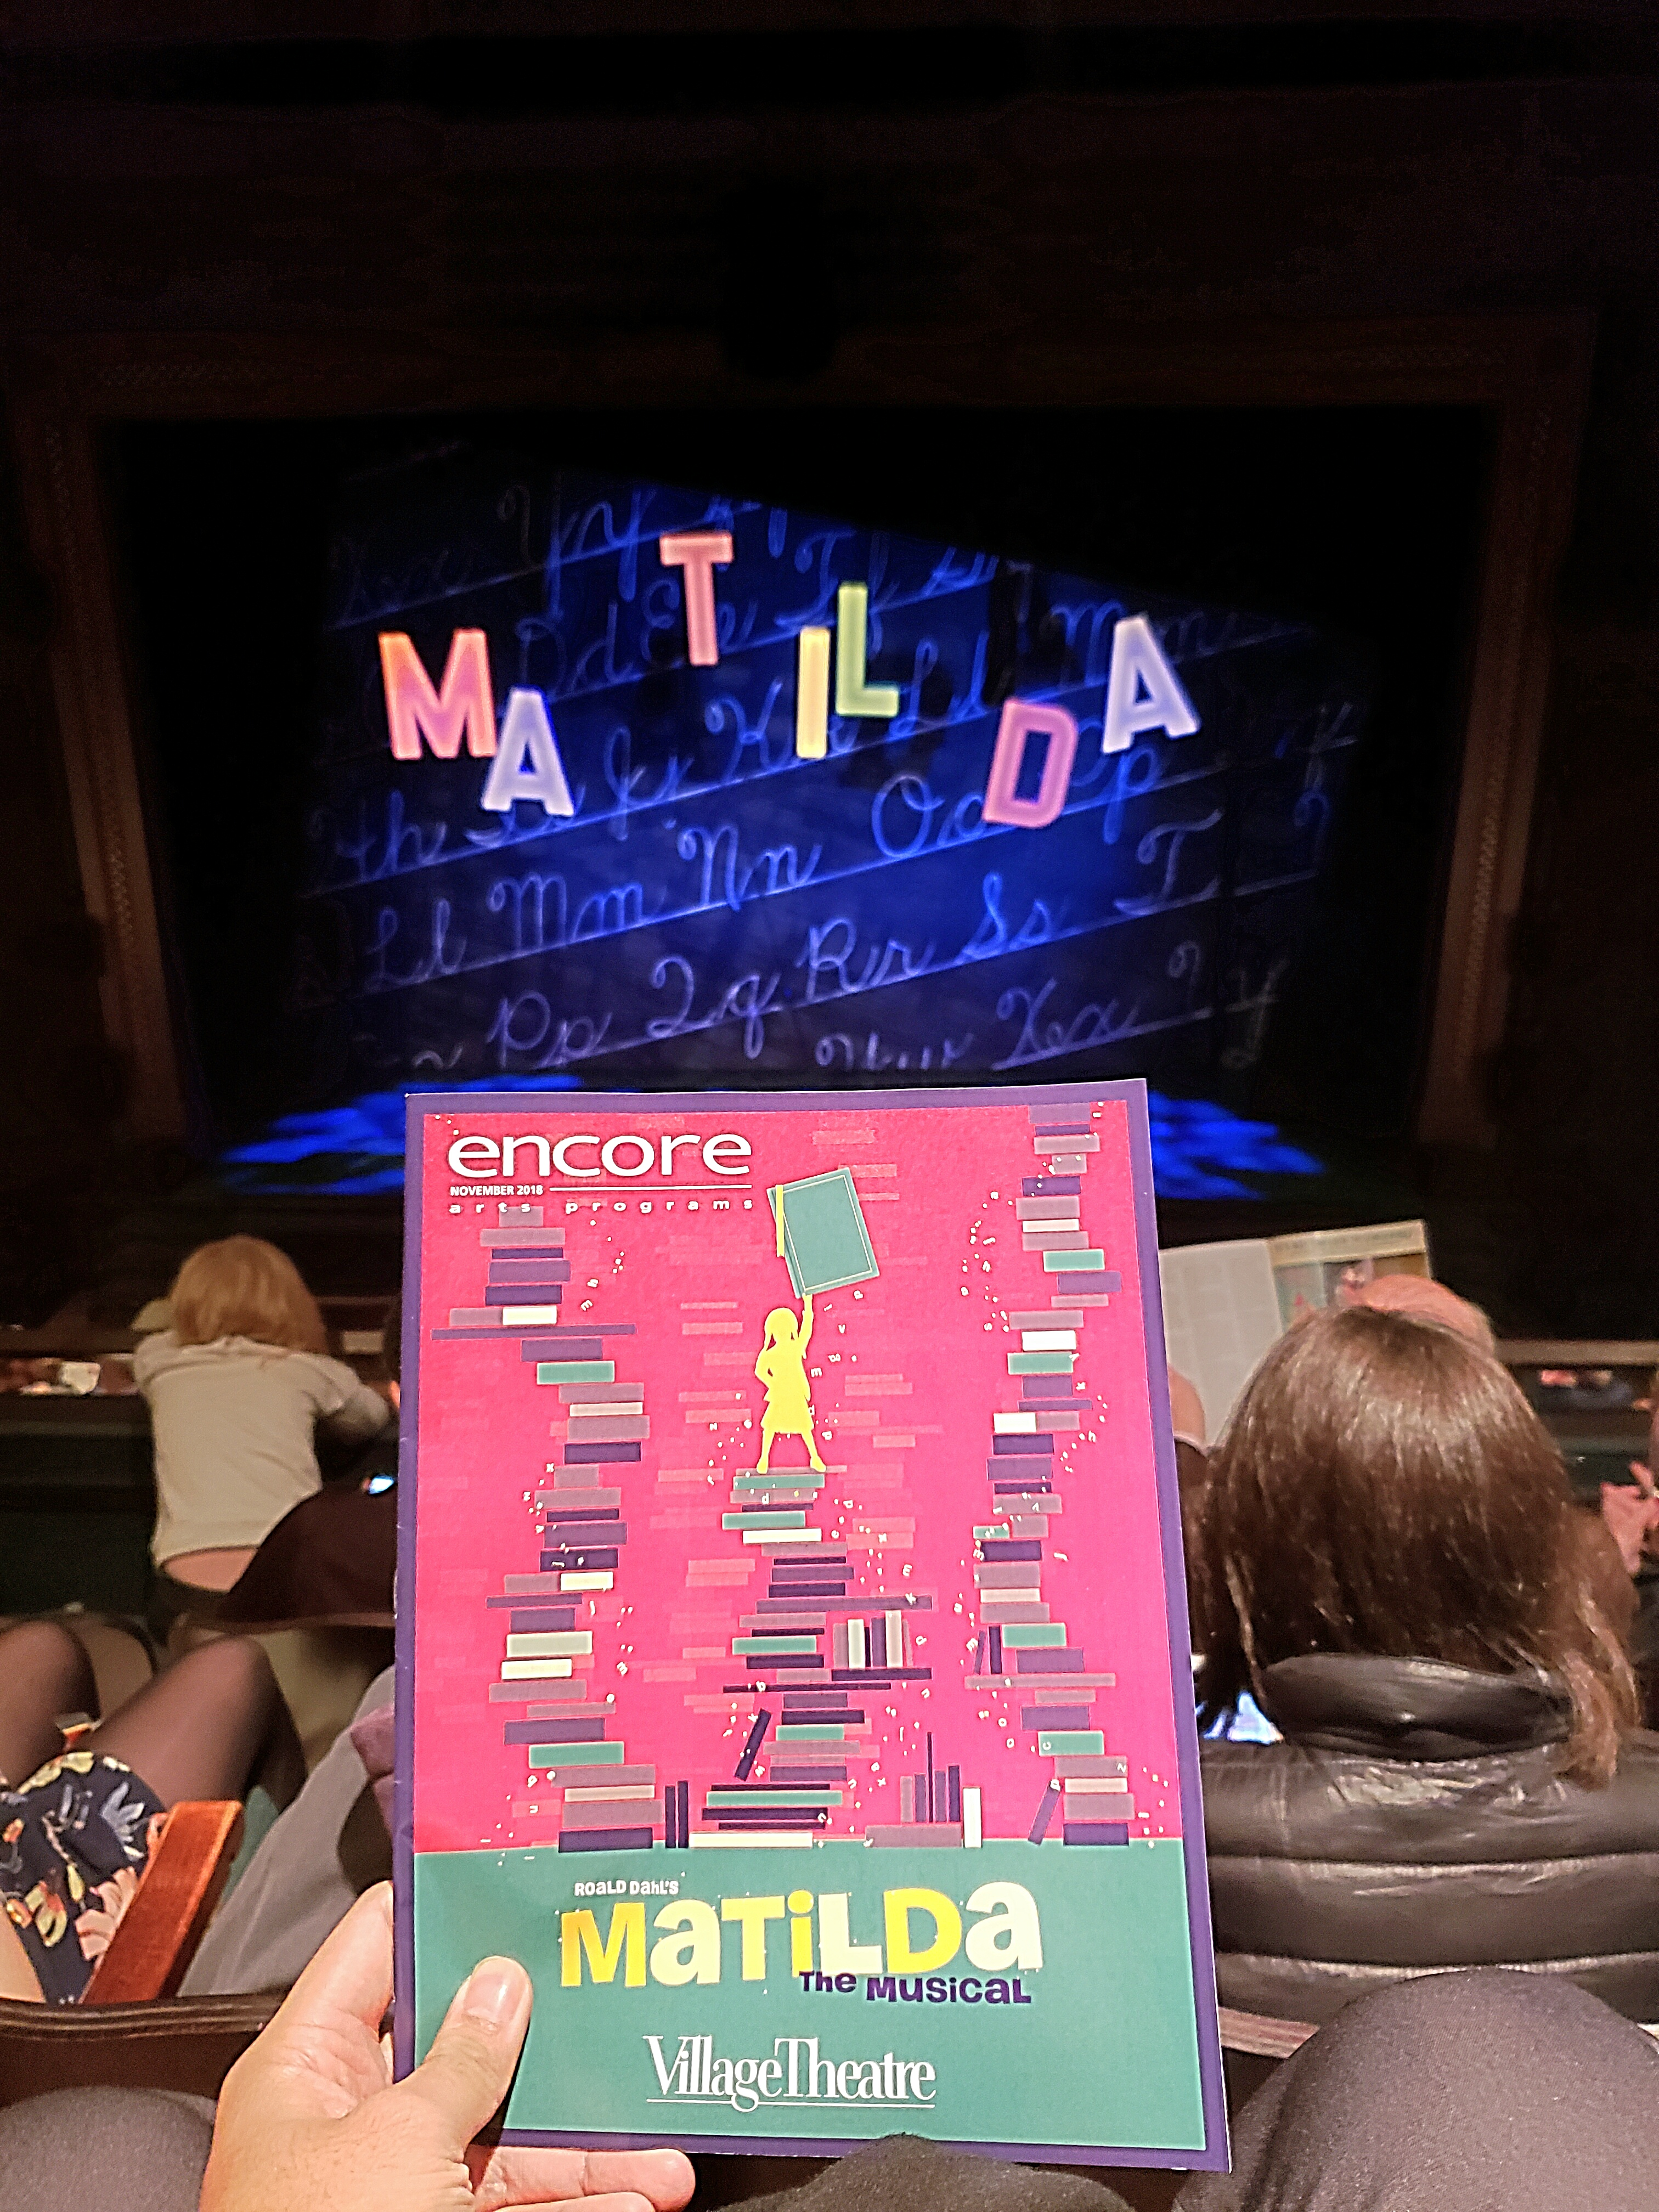 Watched Matilda The Musical, based on Roald Dahl's book. Takes me back to elementary! Too kid-friendly though ... but figured I shouldn't let my season ticket go to waste. Great quality like the national tour.